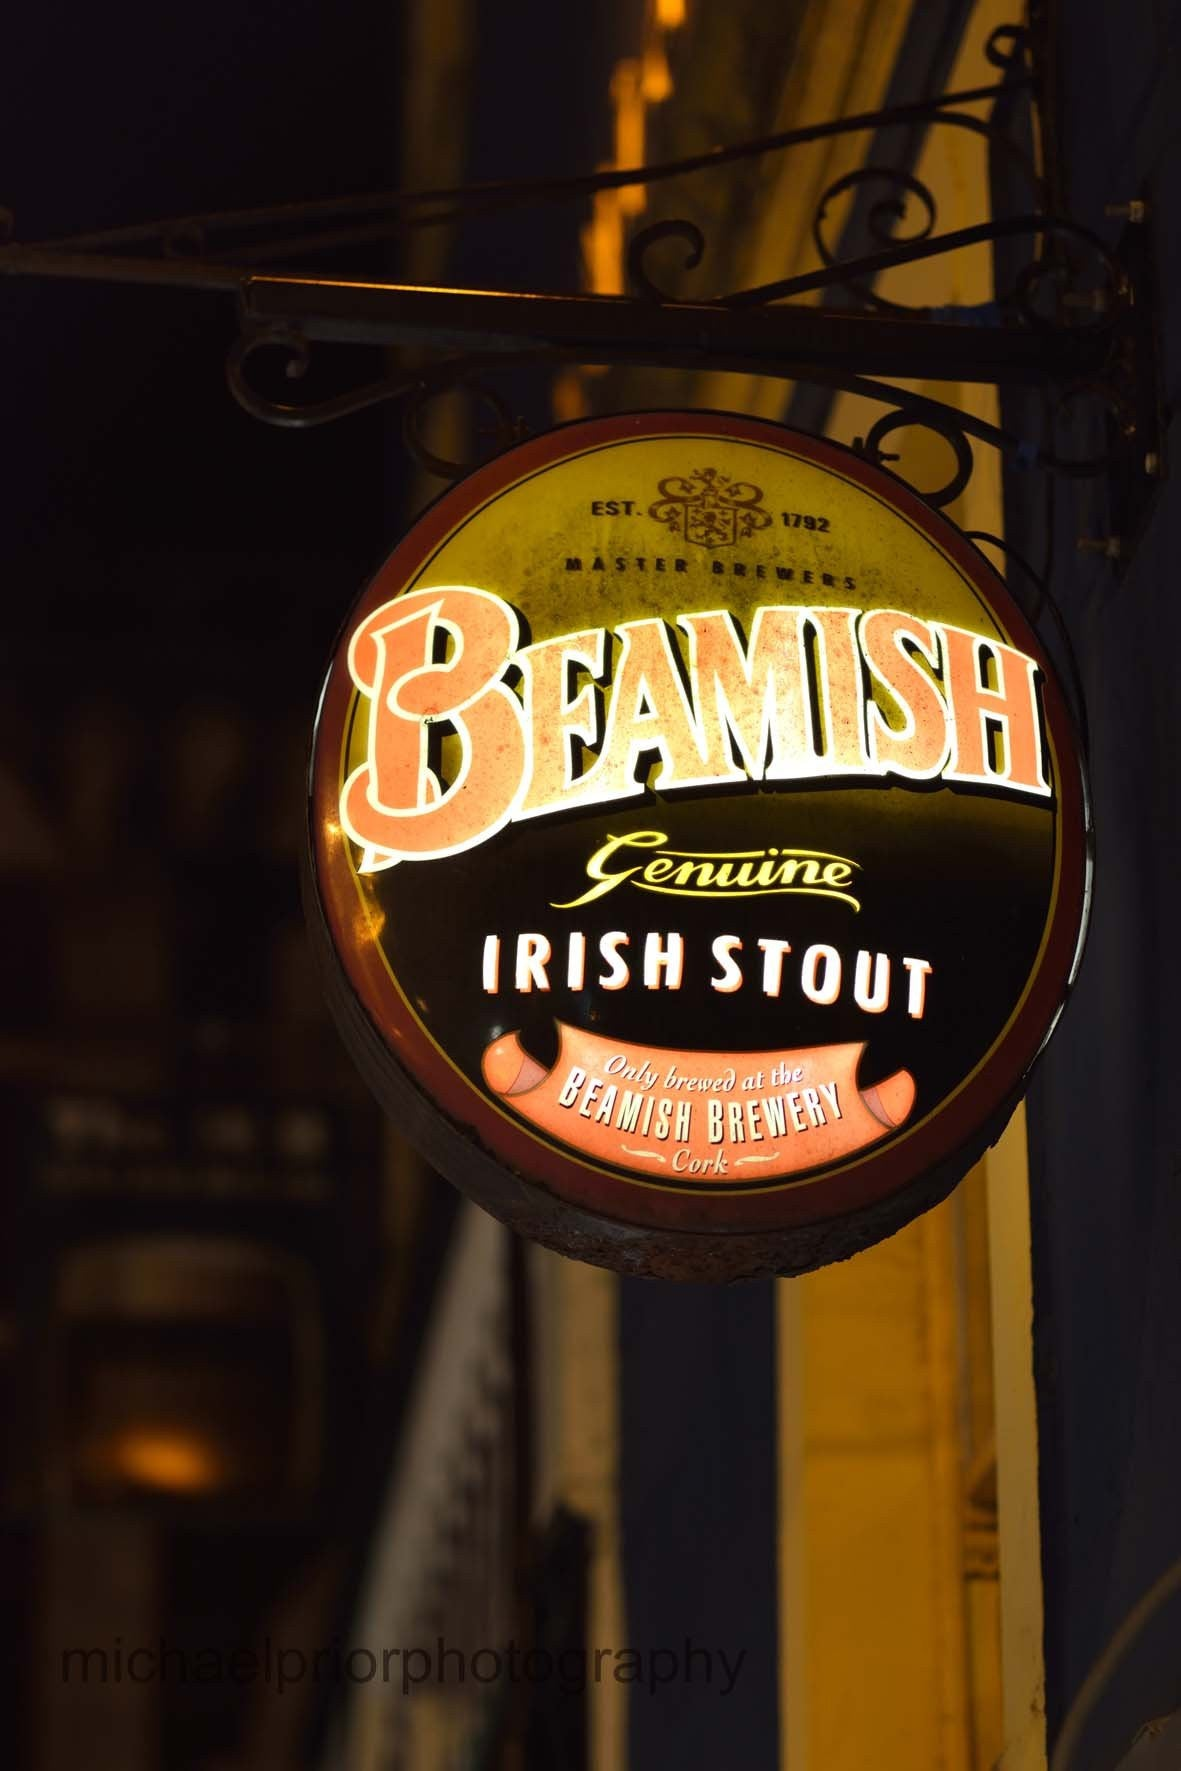 Beamish Irish Stout - Michael Prior Photography